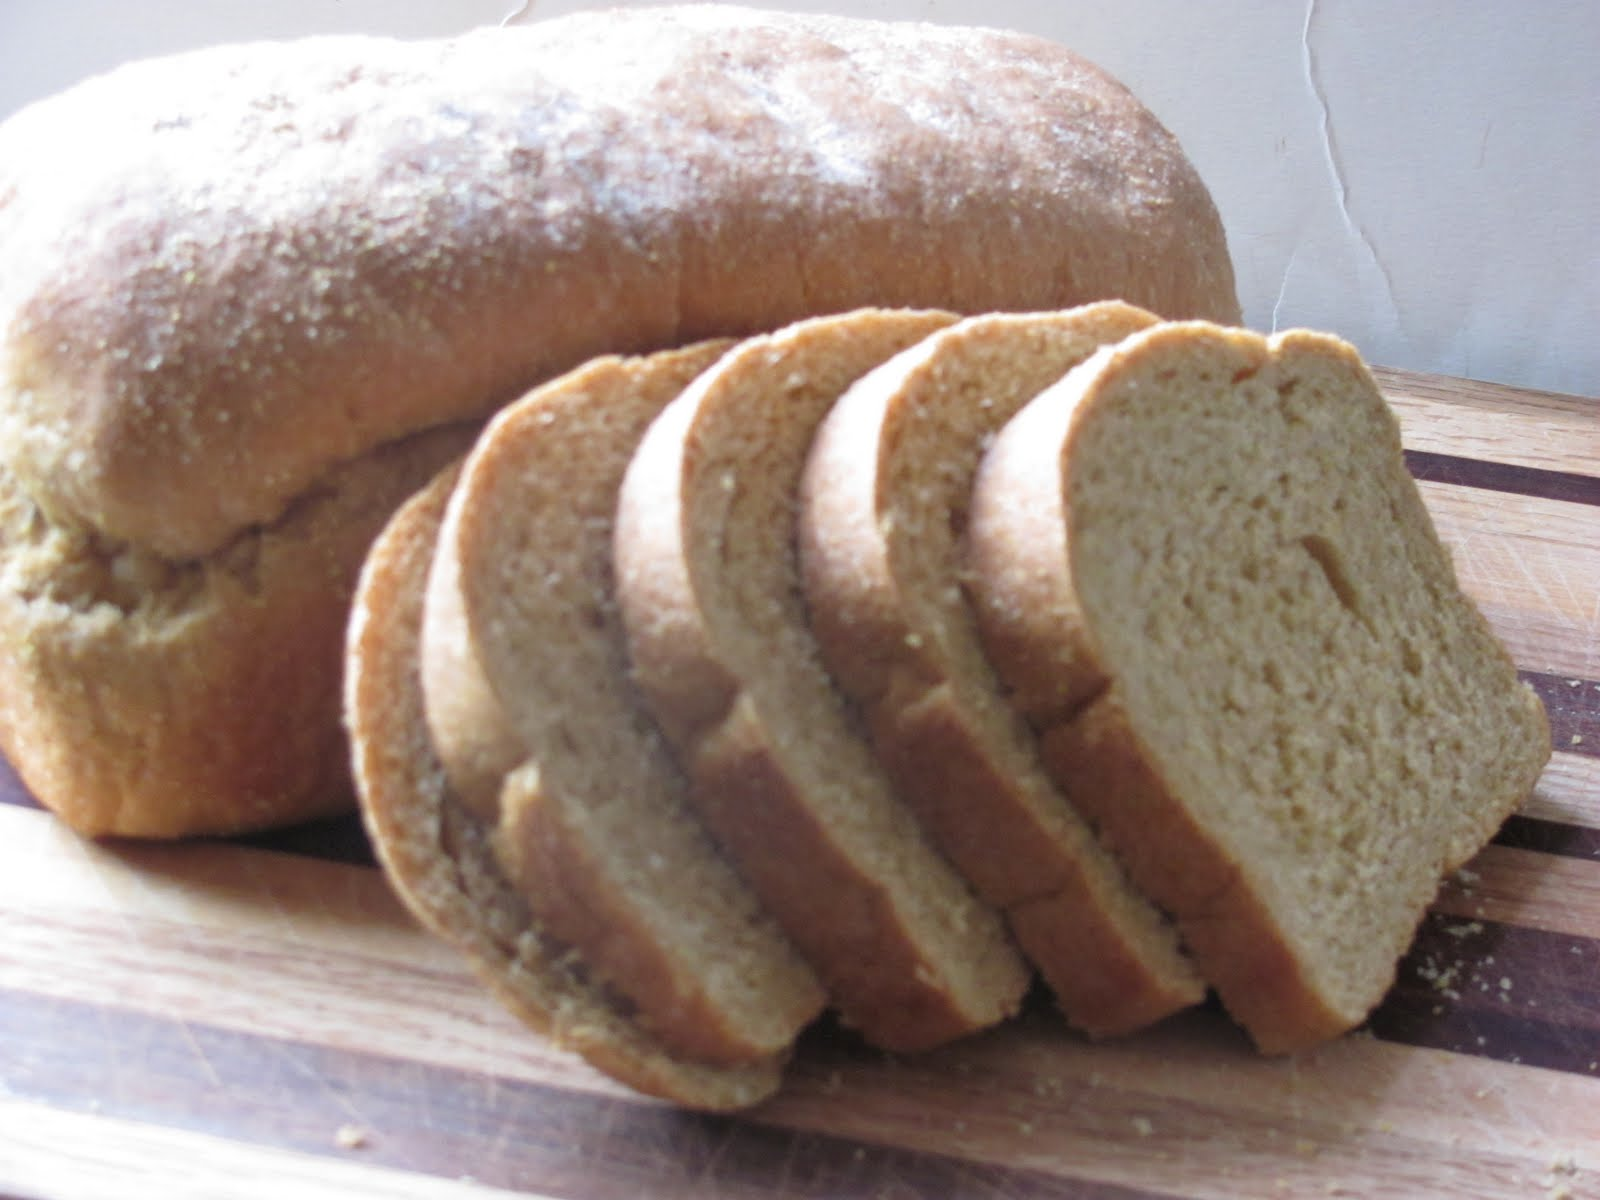 Gastronomists Weekly: Anadama Bread